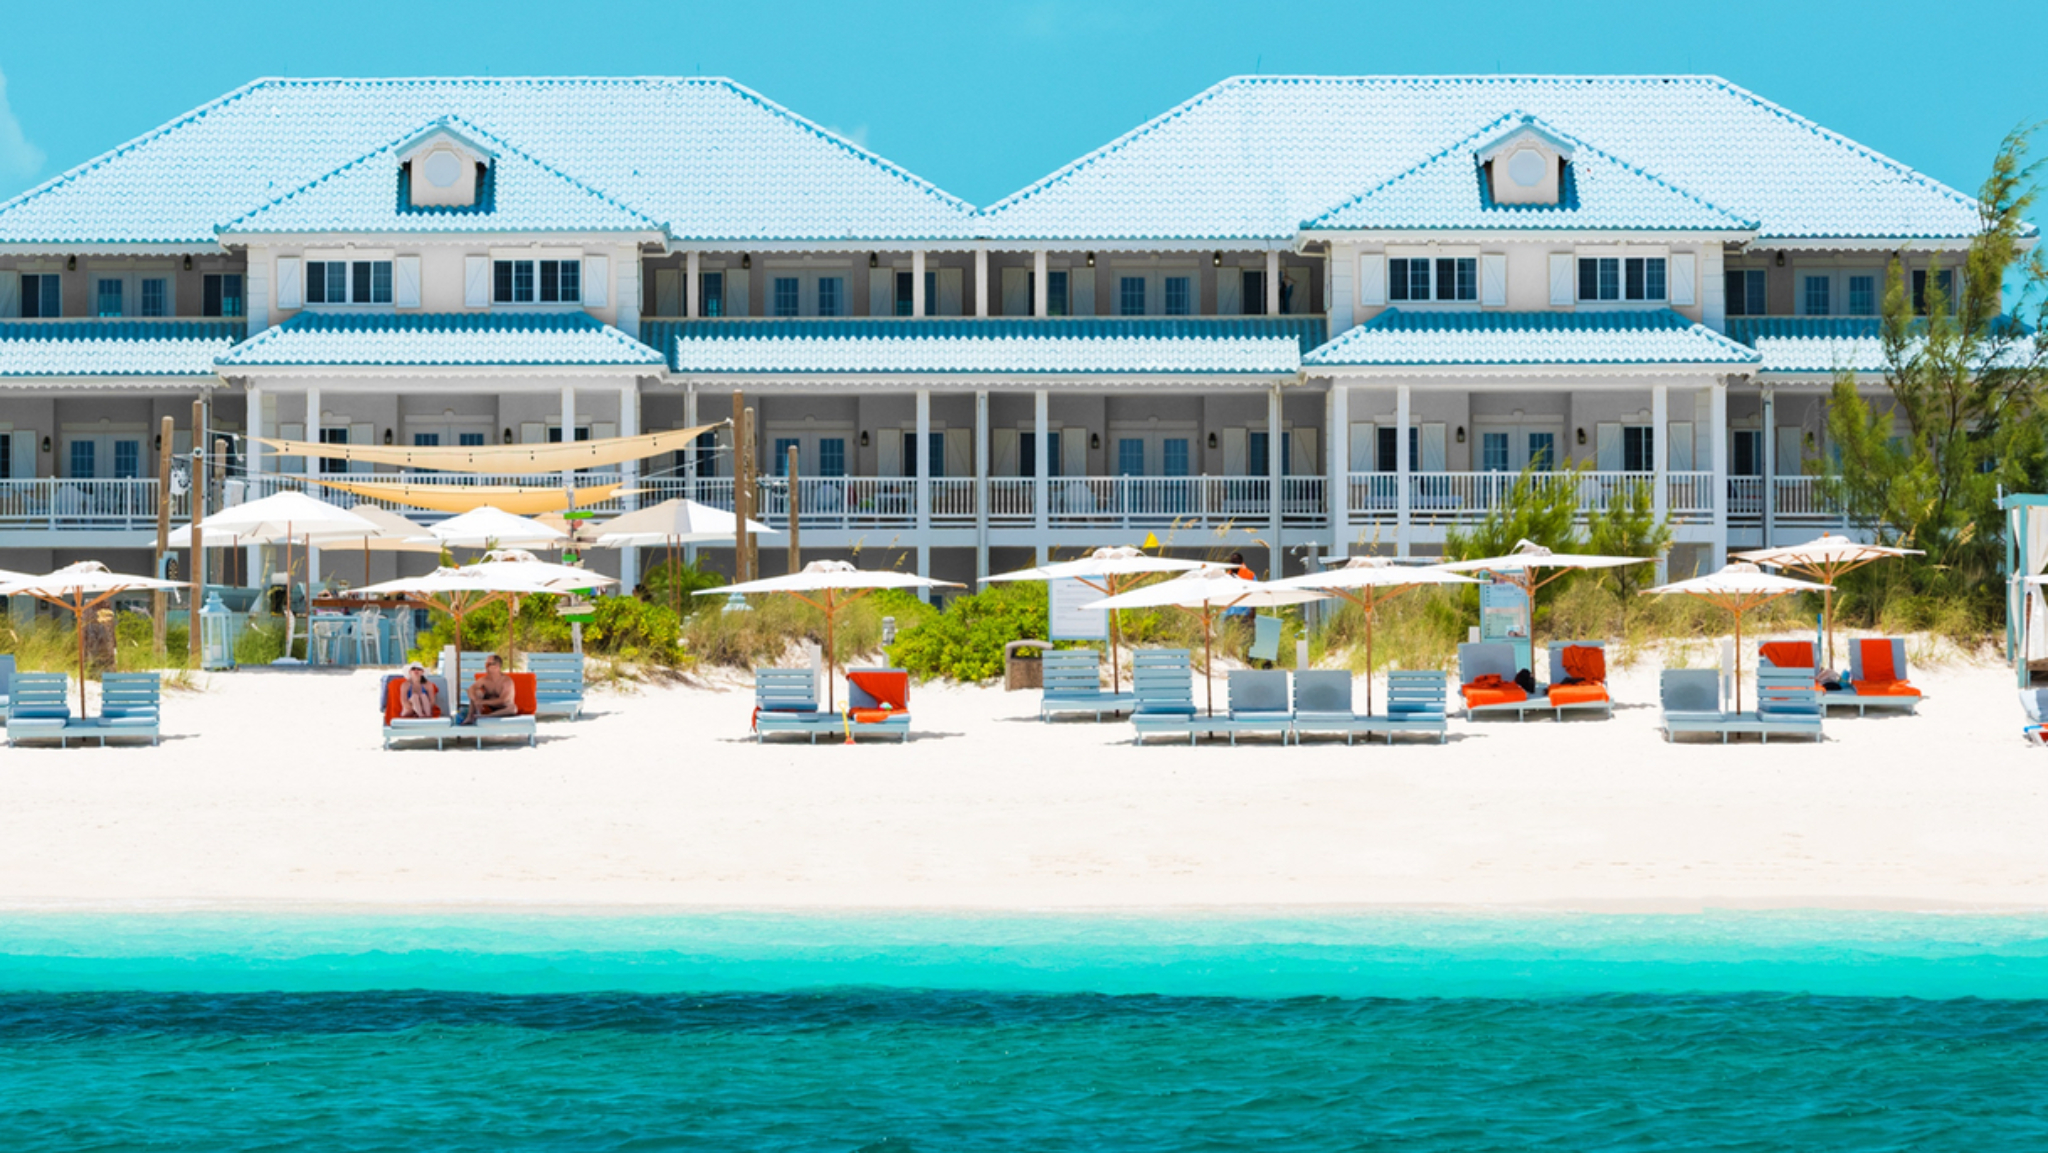 All Inclusive Resort Beach House Turks And Caicos All Inclusive Beach House Turks And